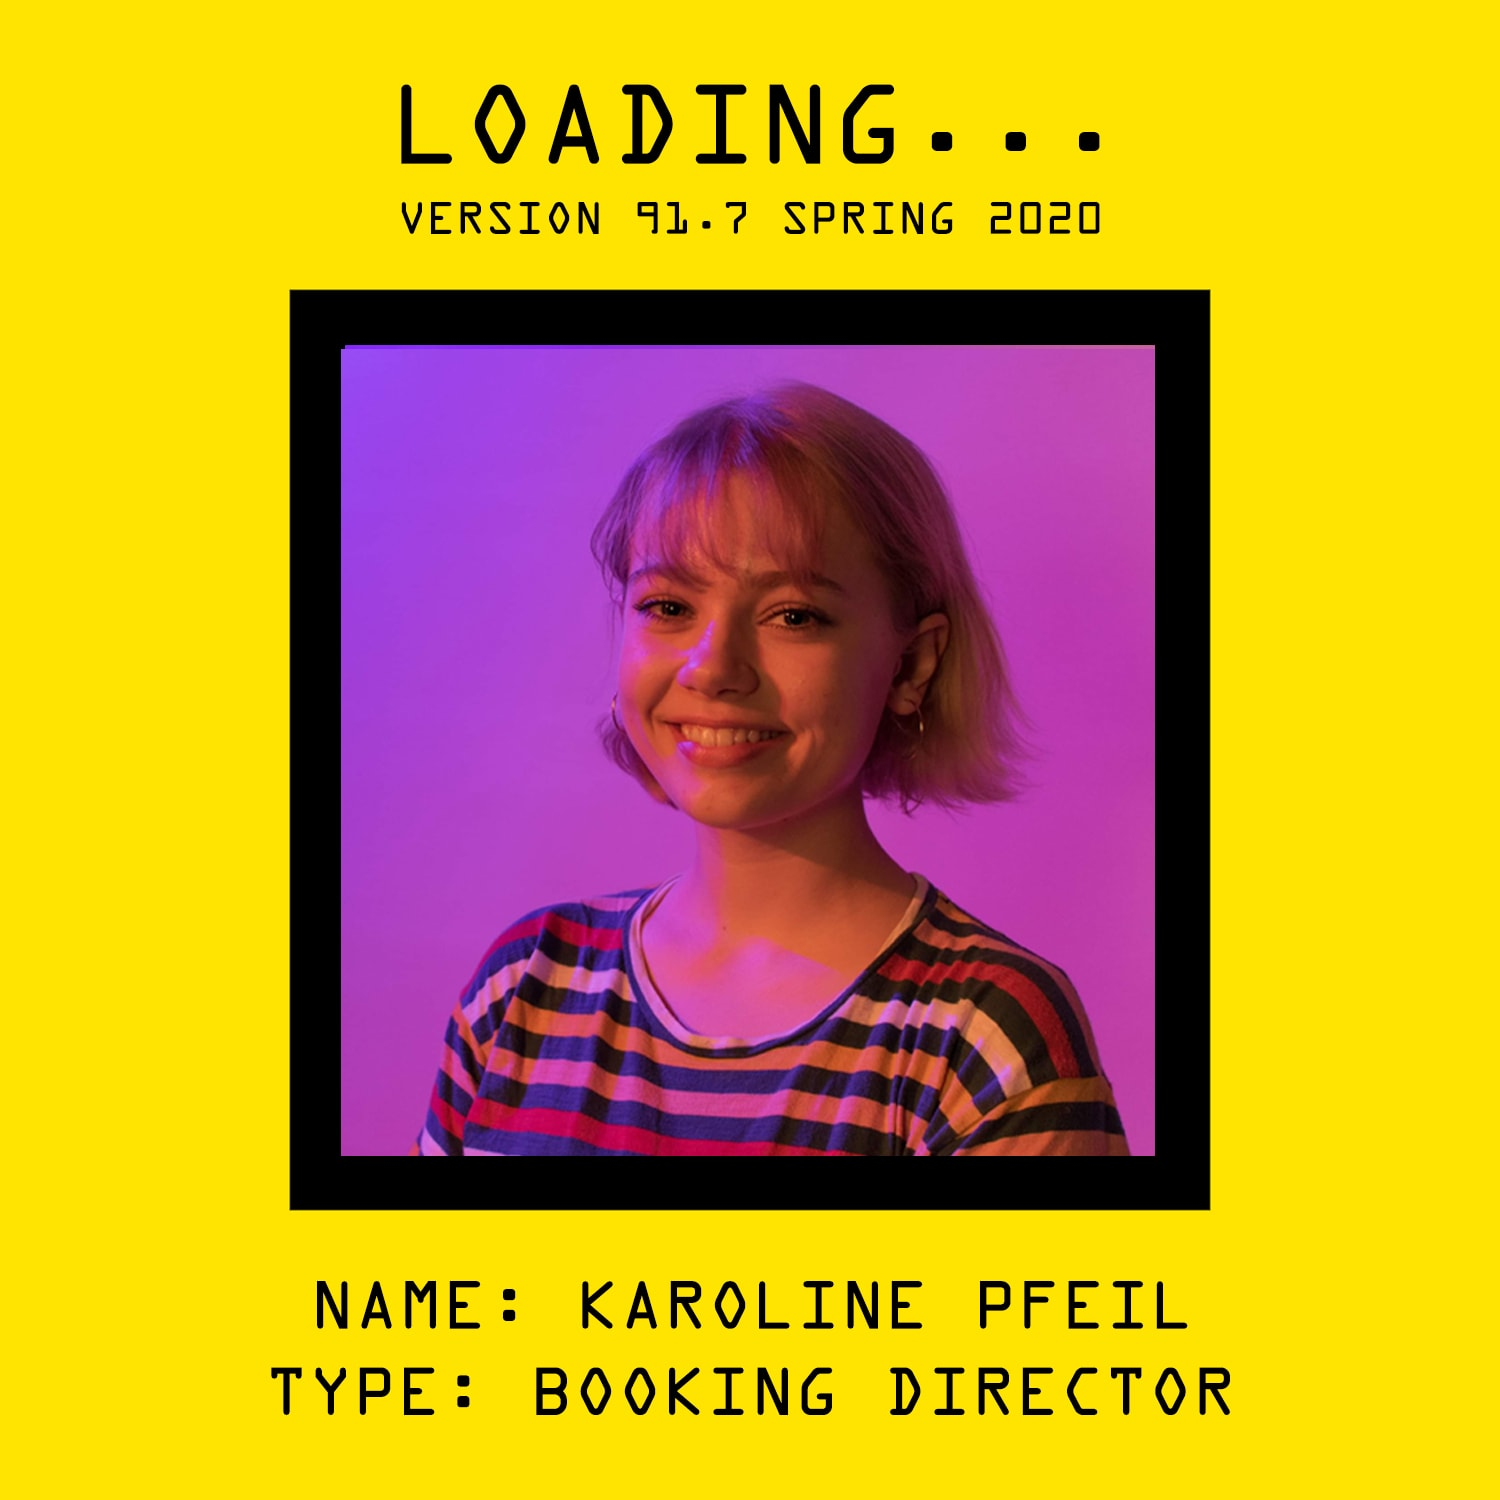 Getting to Know Your Booking Director by Karoline Pfeil